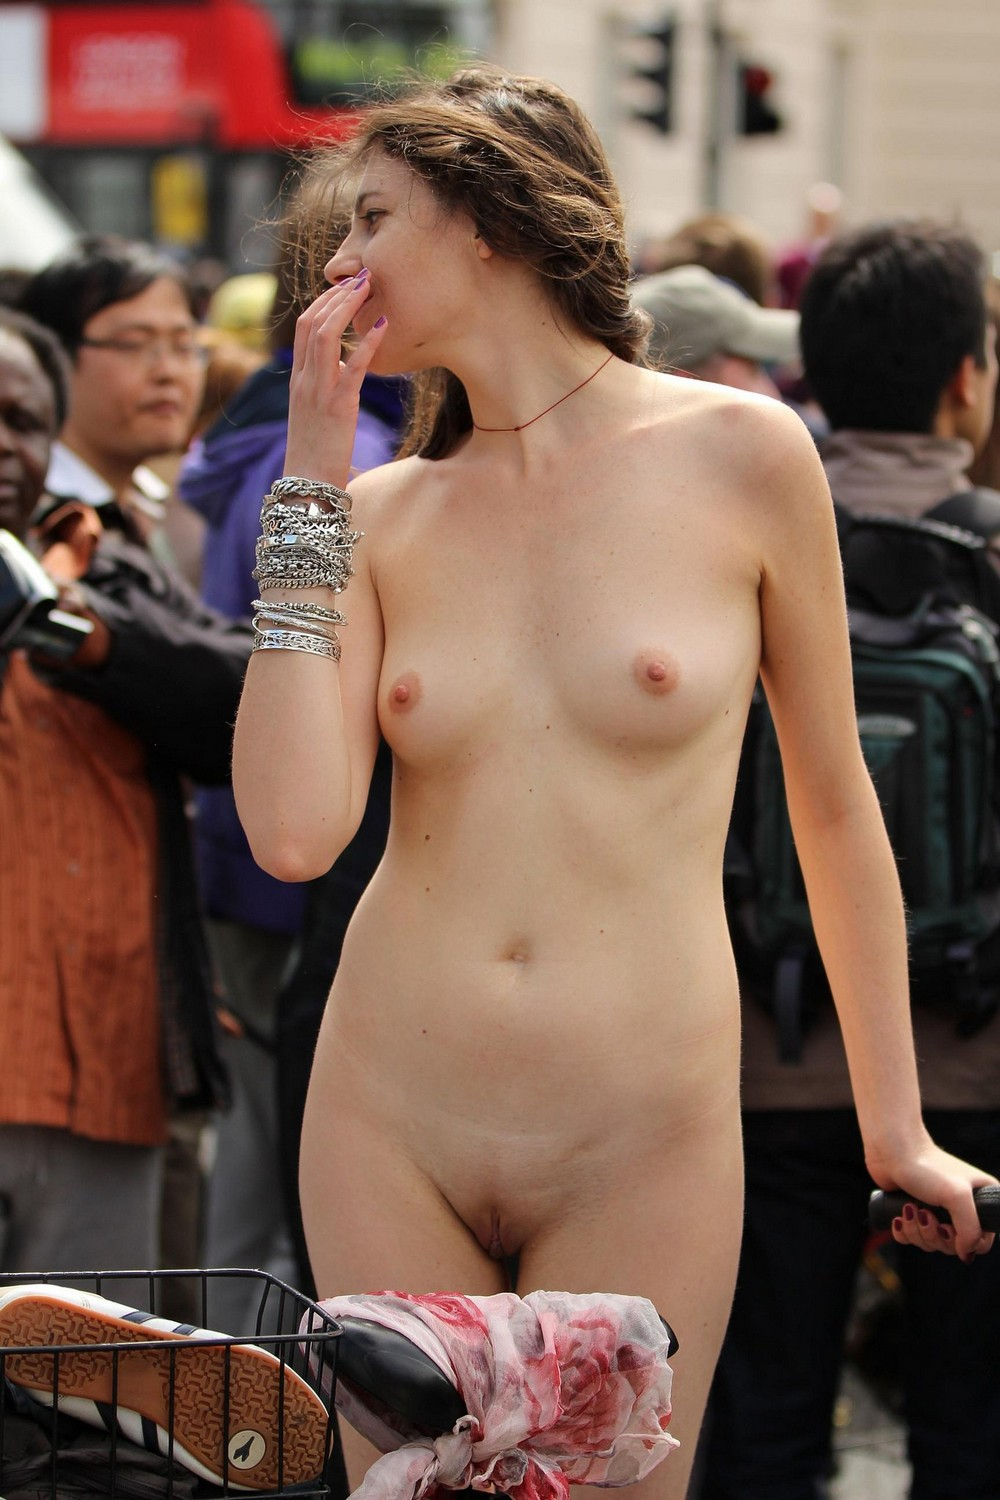 Nude girl head not showing, jism on pussy